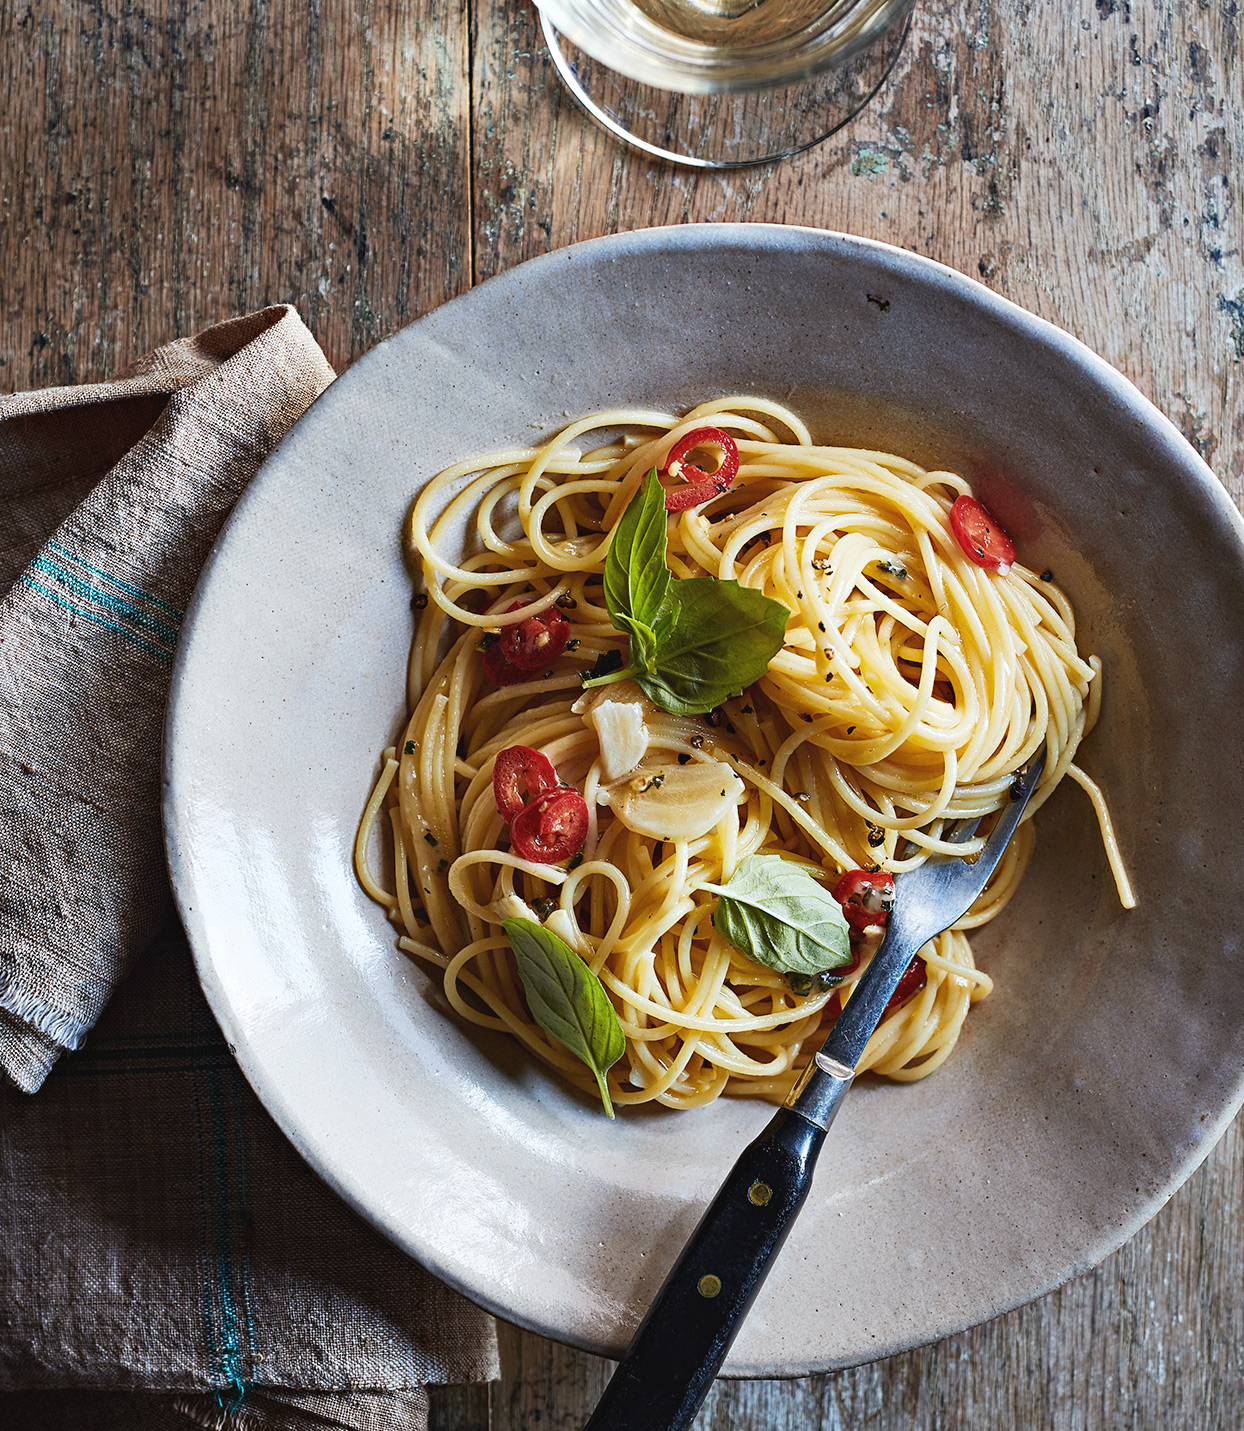 spaghetti with garlic oil and chile served on gray plate